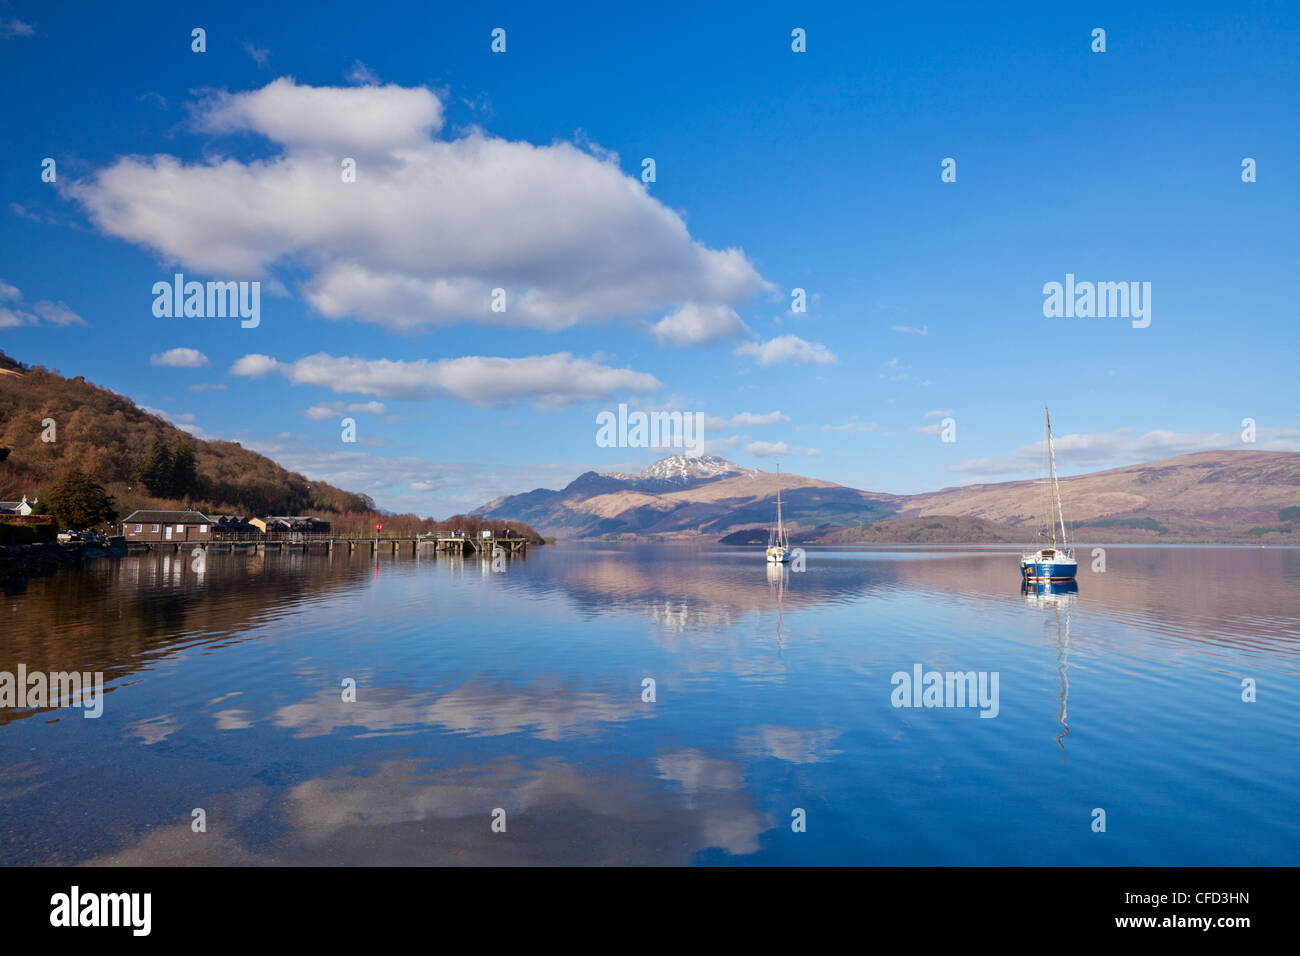 Picturesque tranquil Loch Lomond with sailing boats, Luss Jetty, Luss, Argyll and Bute, Scotland, United Kingdom, - Stock Image